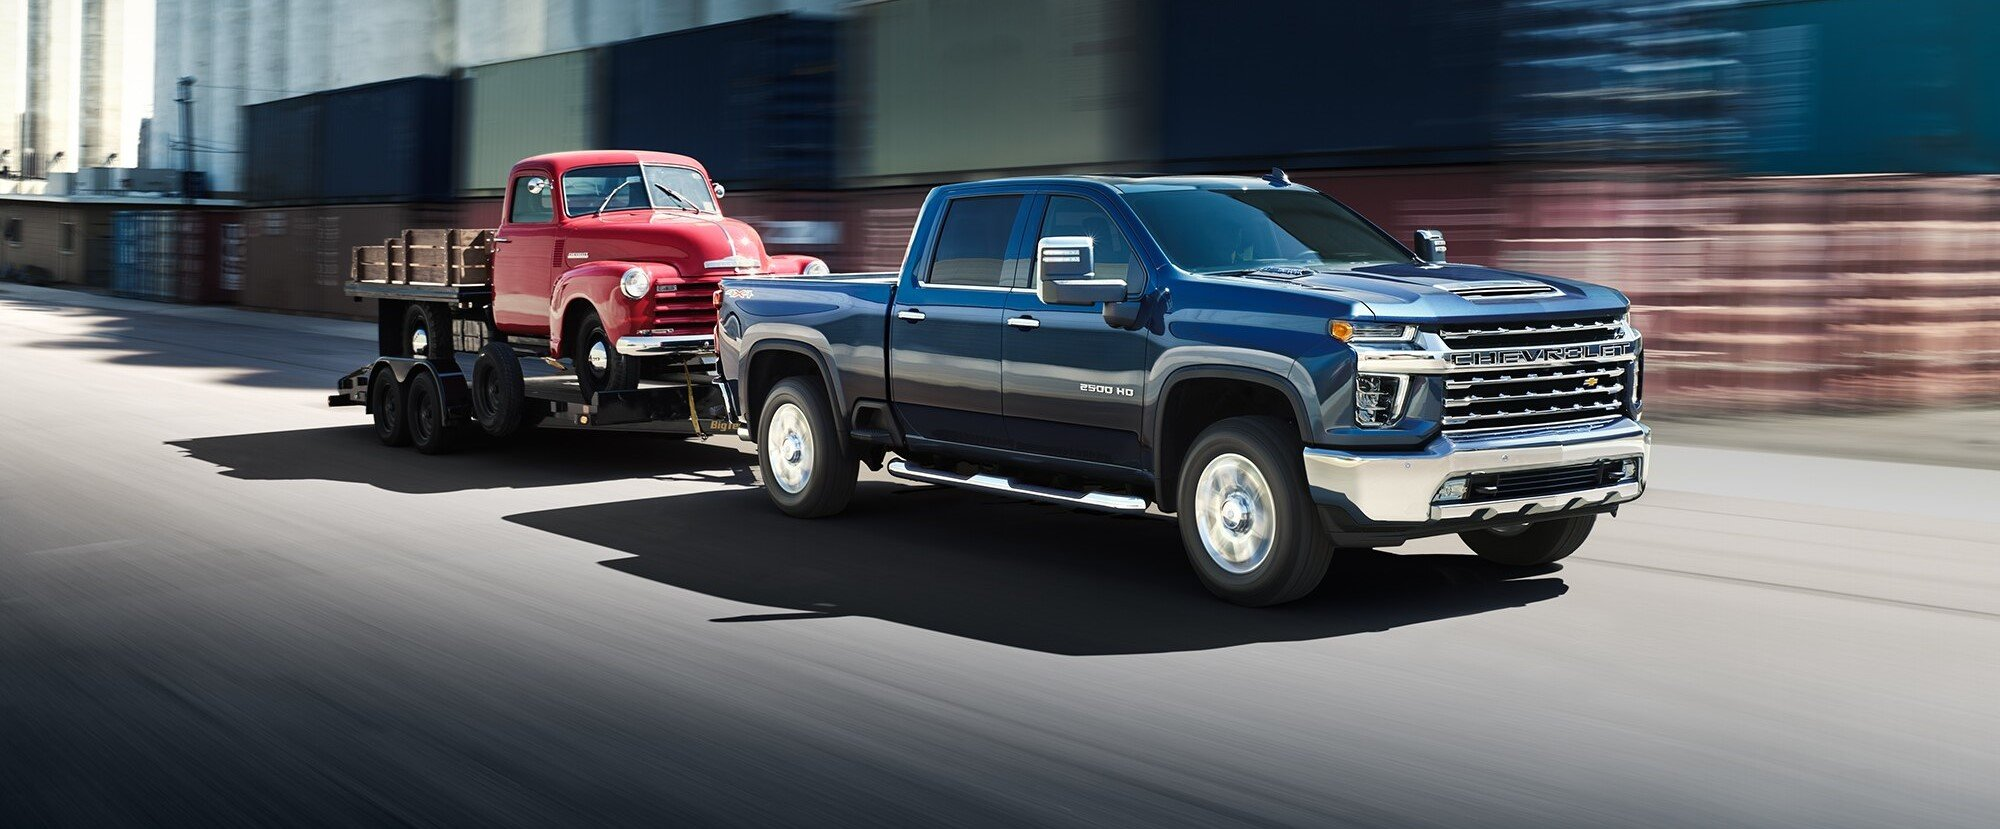 Chevrolet Silverado 2500 Lease Deals Price Cincinnati Oh